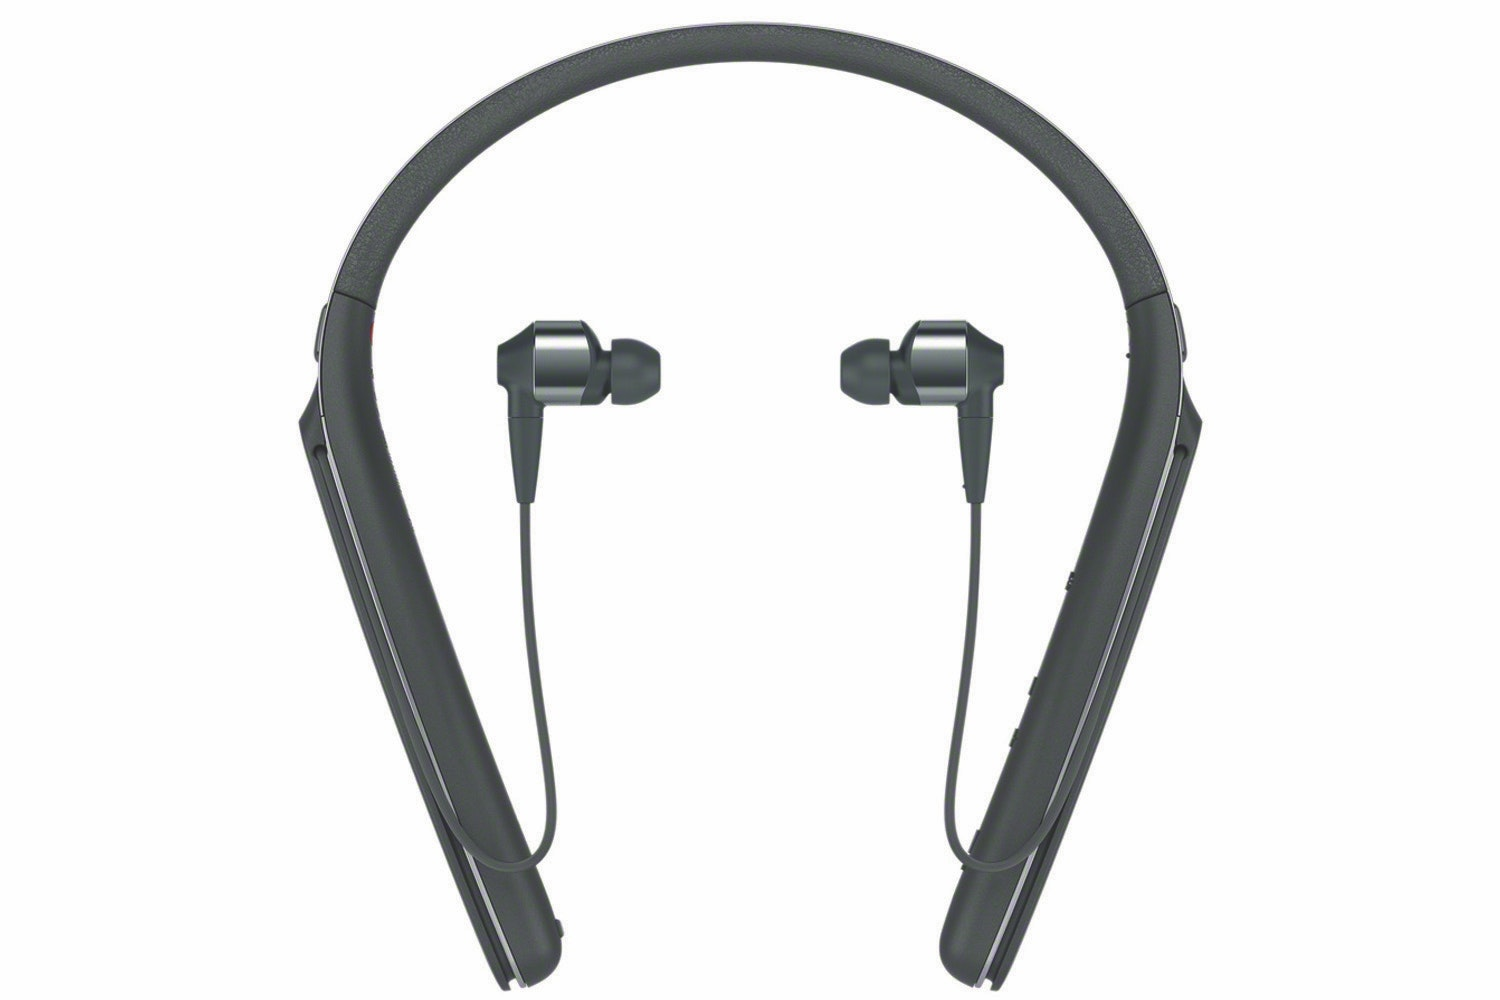 Sony WI-1000X Wireless Noise Cancelling Headphones